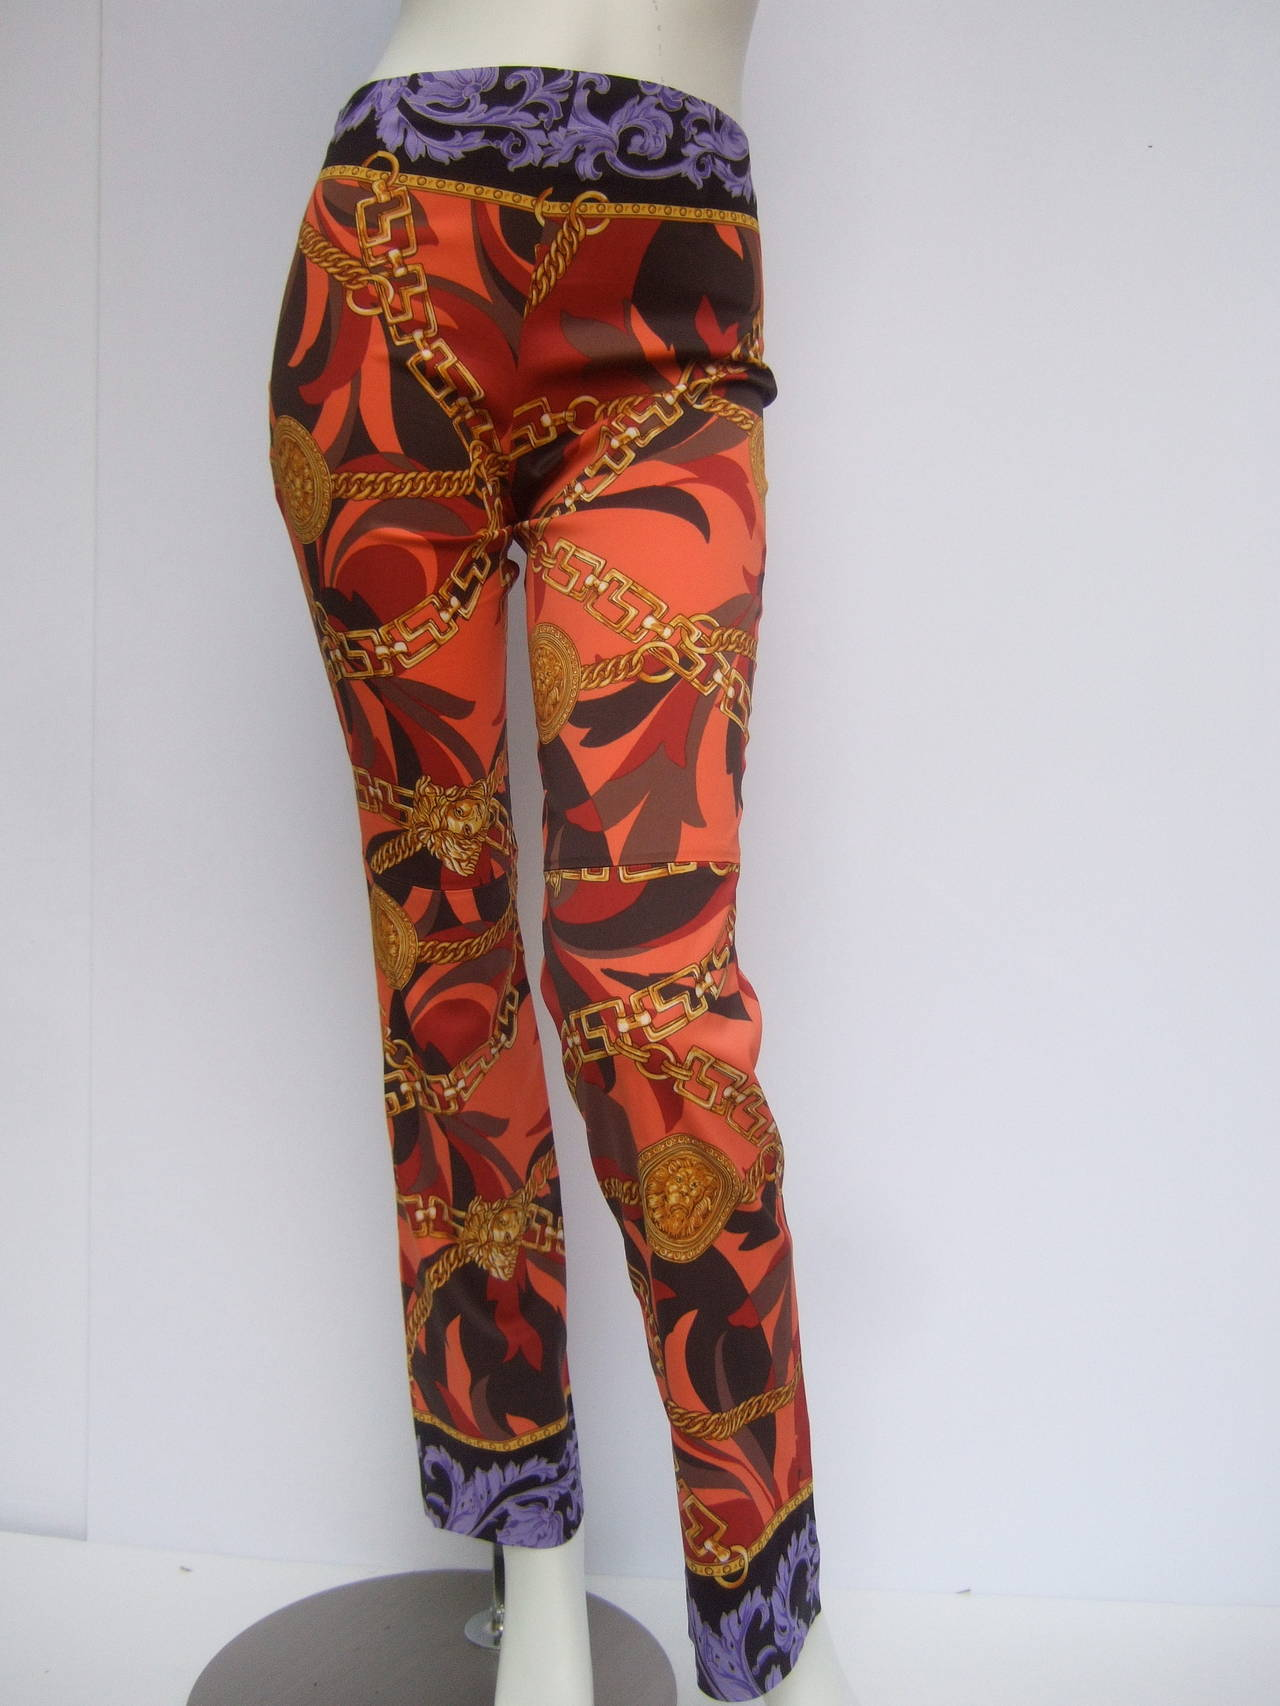 Versace Iconic Medusa Graphic Print Stretch Jeans Size 28 10